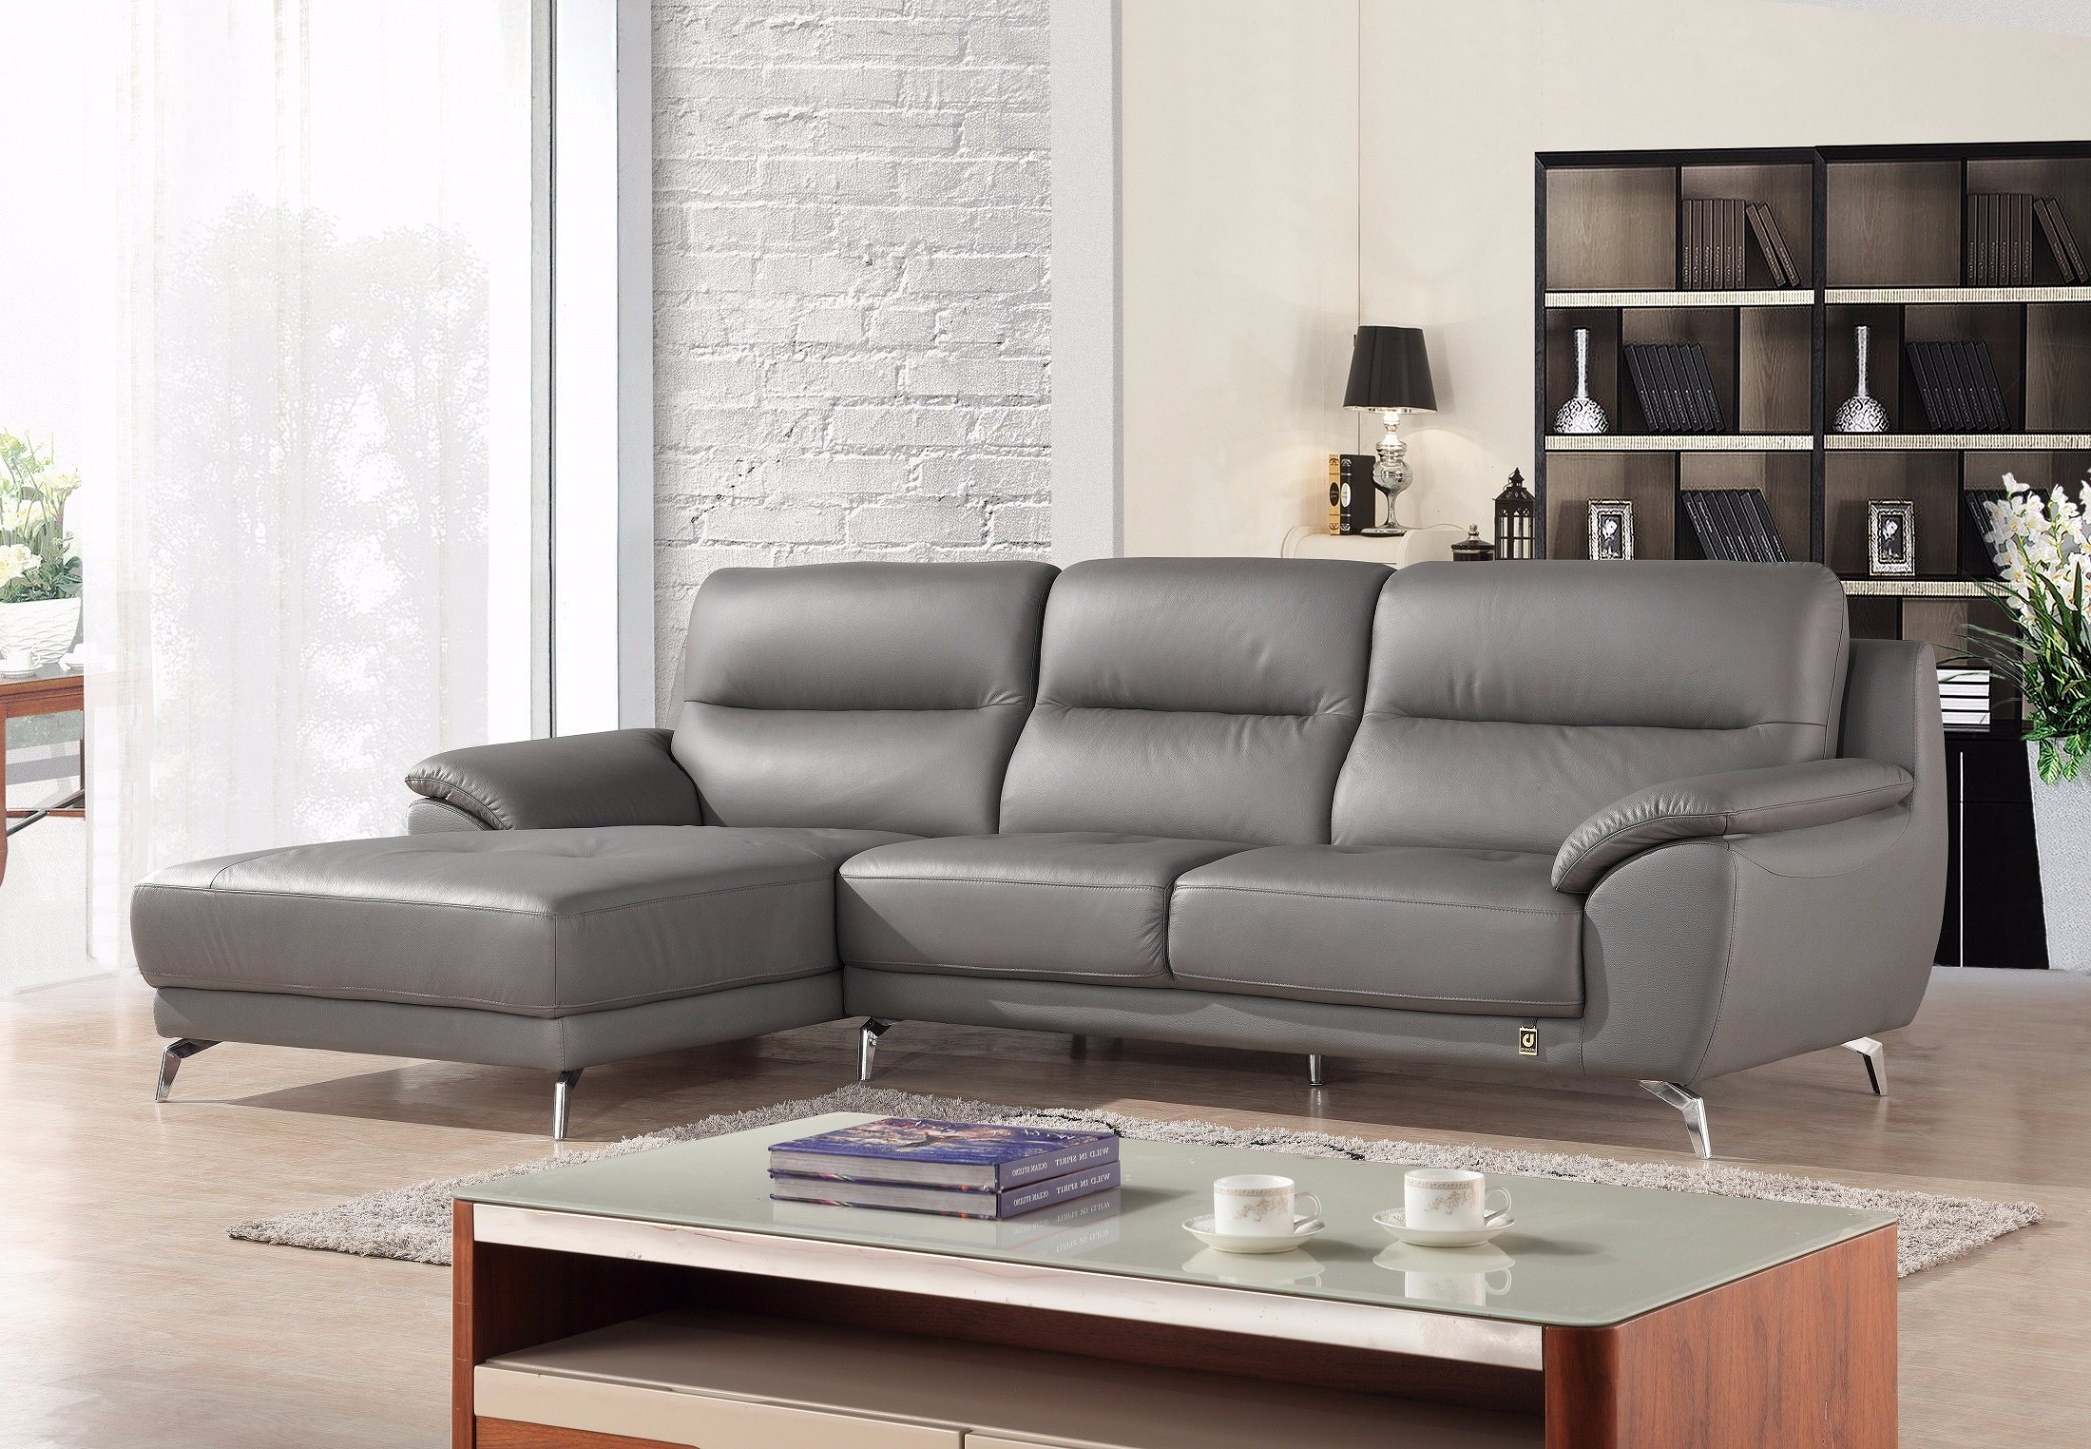 Most Recent Owego L Shaped Sectional Sofas Pertaining To China European Modern Big L Shape Sectional Leather Sofa (View 2 of 25)